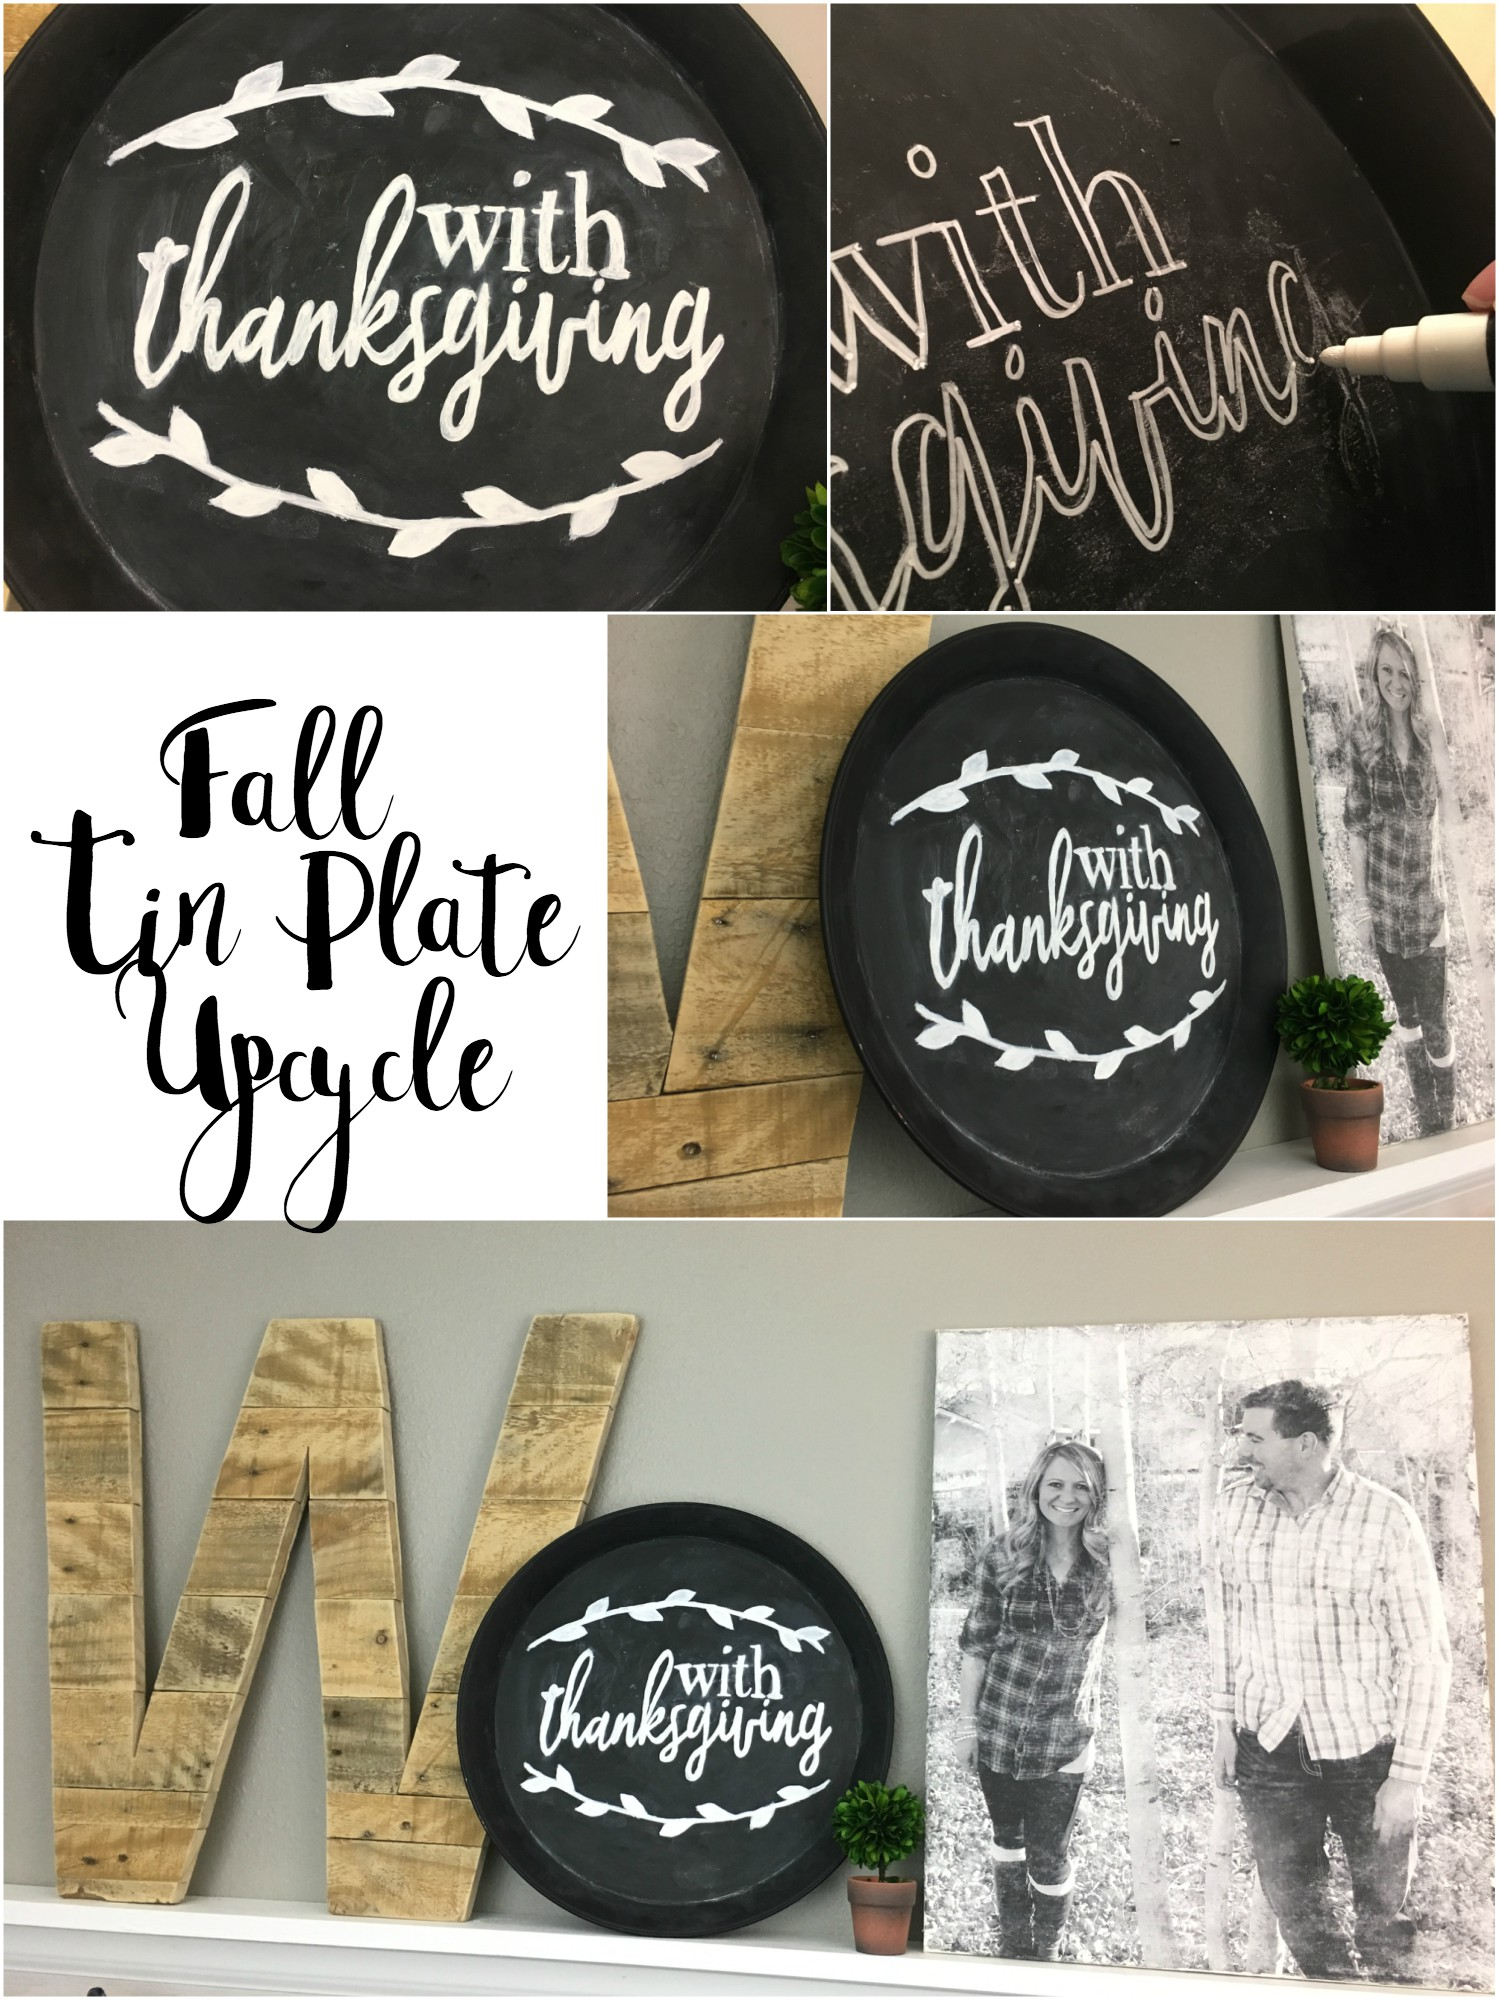 Thrift store upcycle a tin plate to make an easy fall and Thanksgiving decoration. Easy and super cheap.